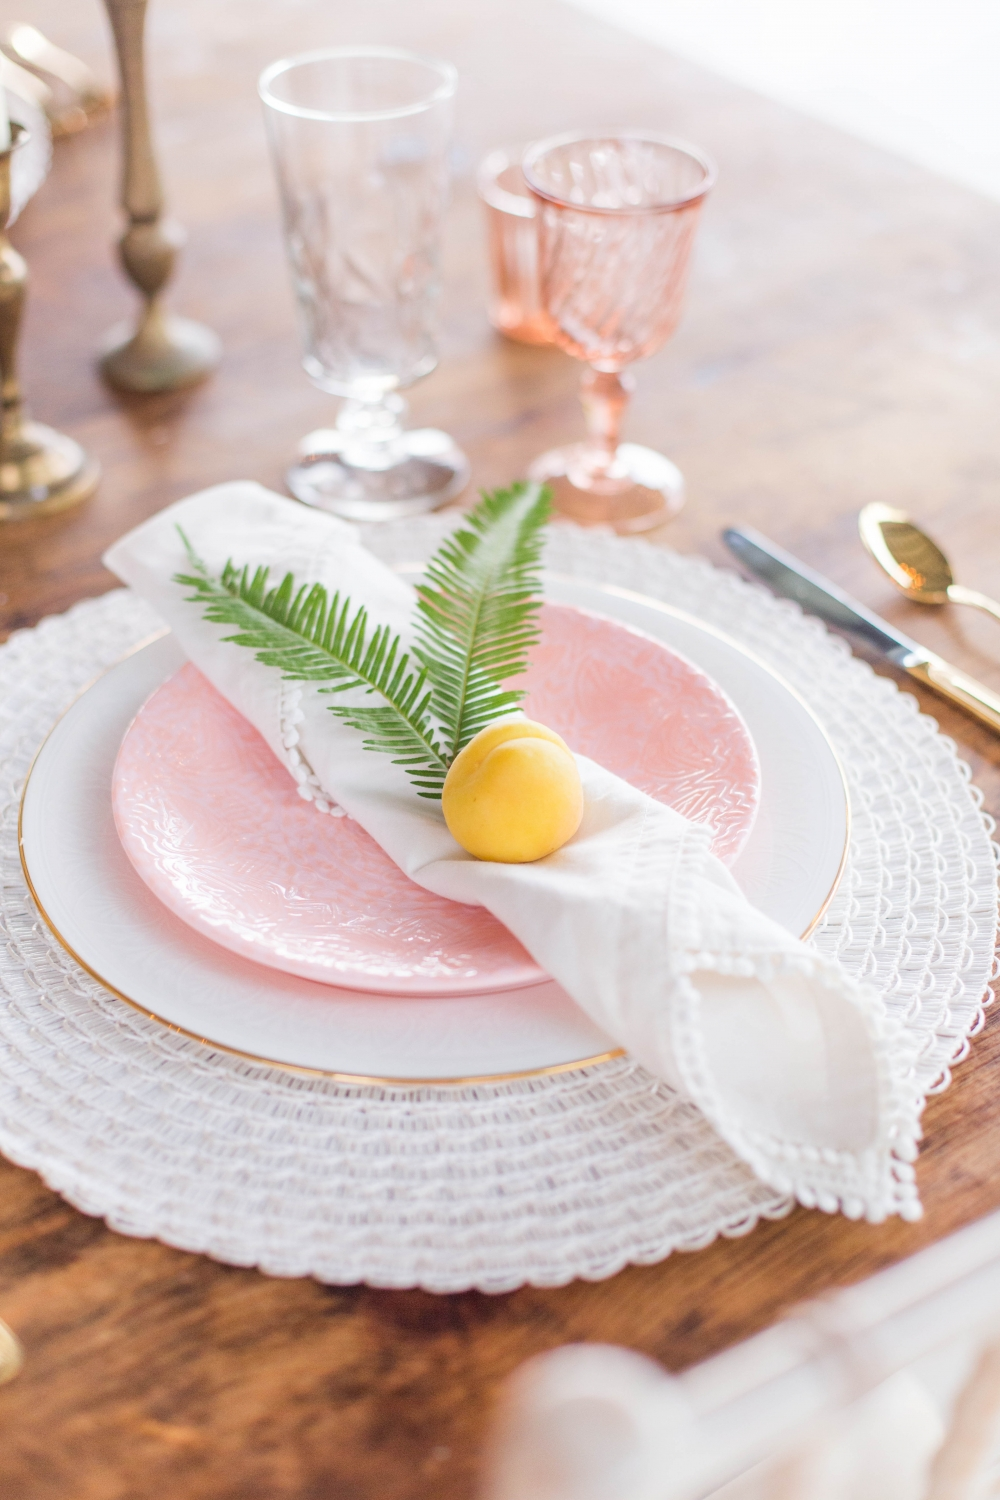 pink and white place setting with a peach